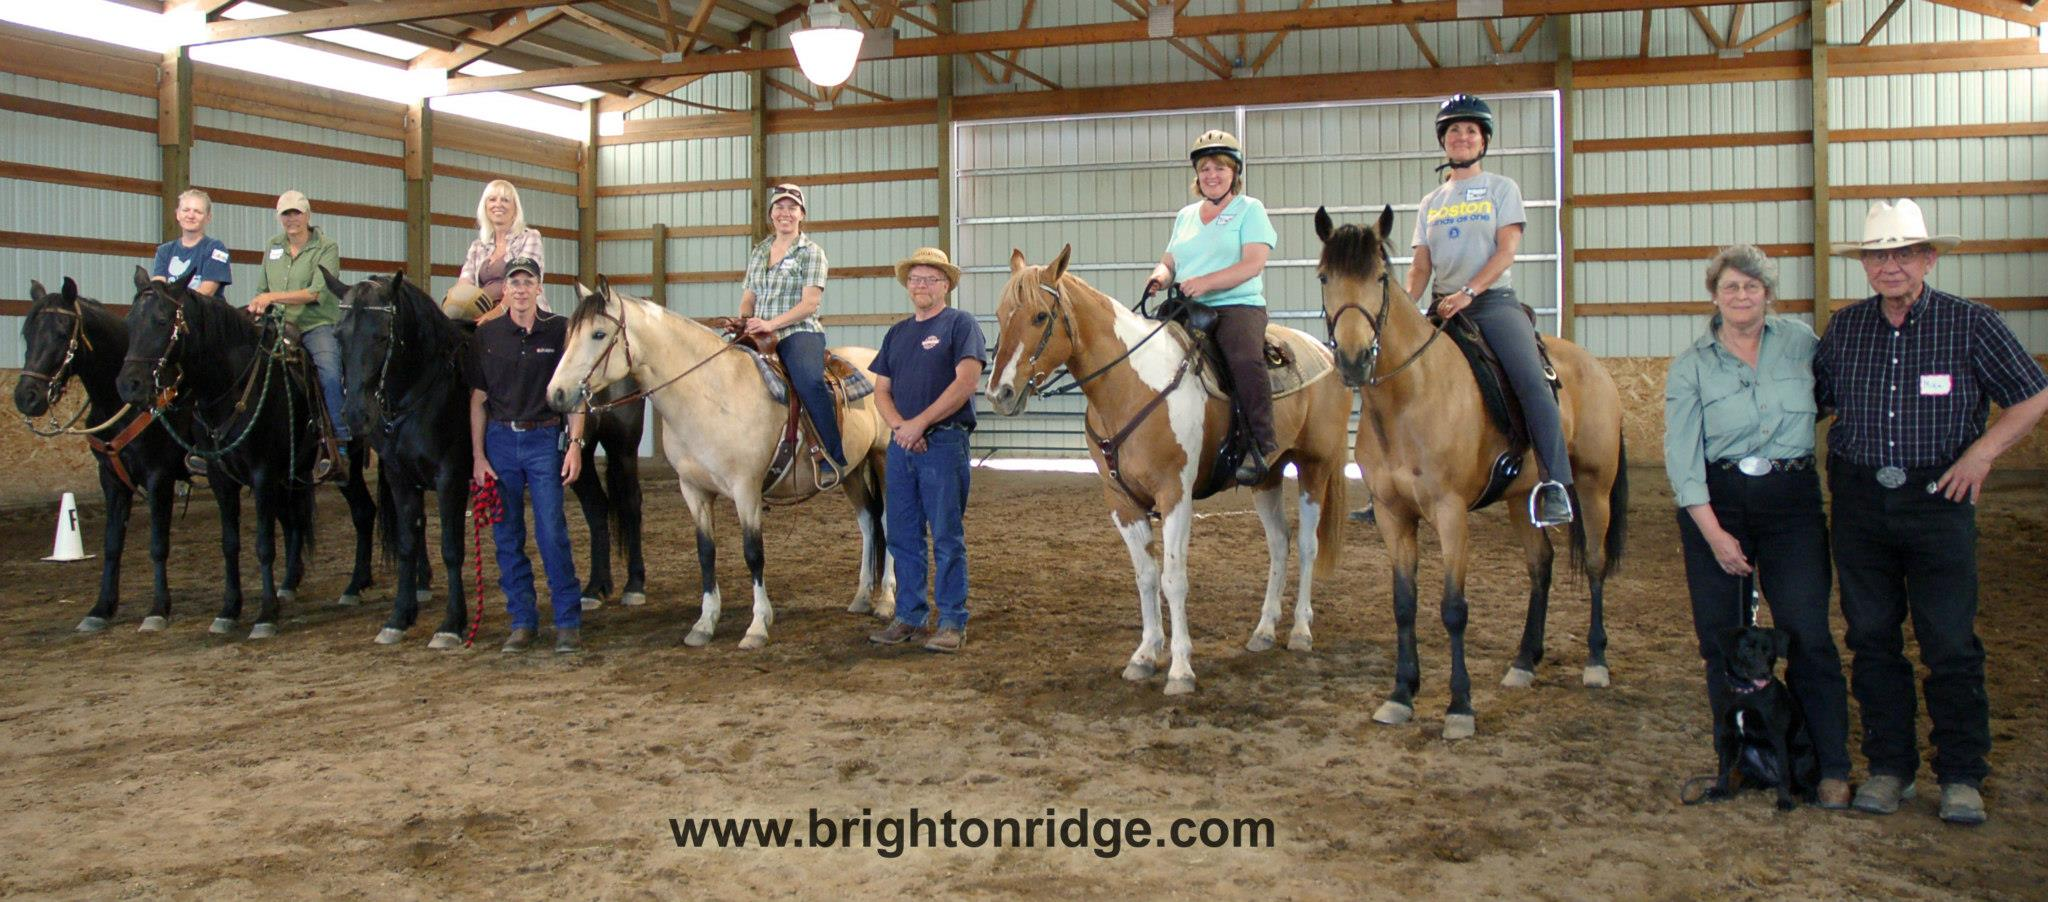 Wonderful group of people and horses at this clinic in Spokane at Lady Raven Stables..